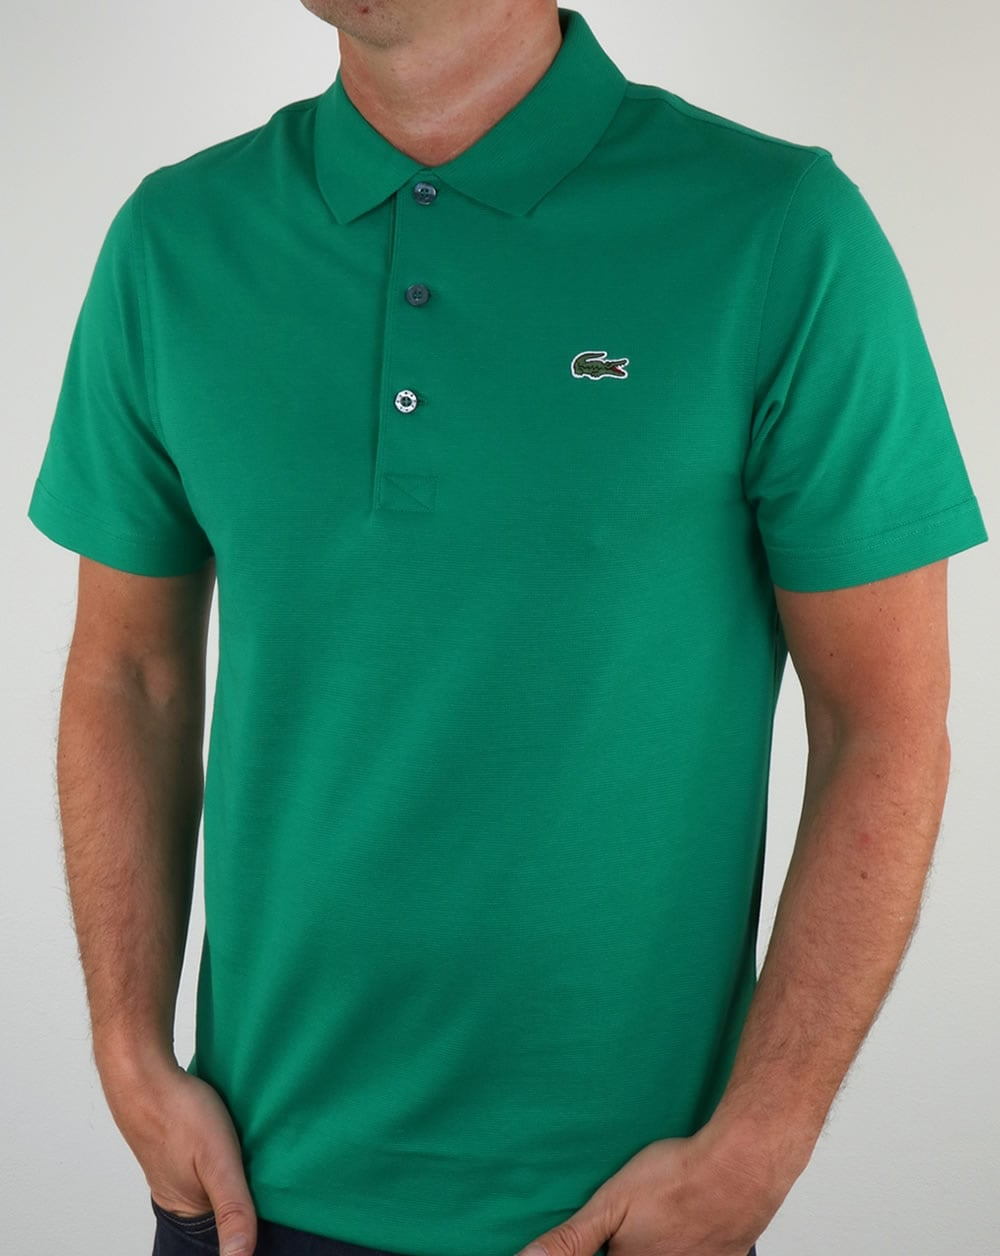 Lacoste polo shirt woodland green men 39 s top for Lacoste poloshirt weiay